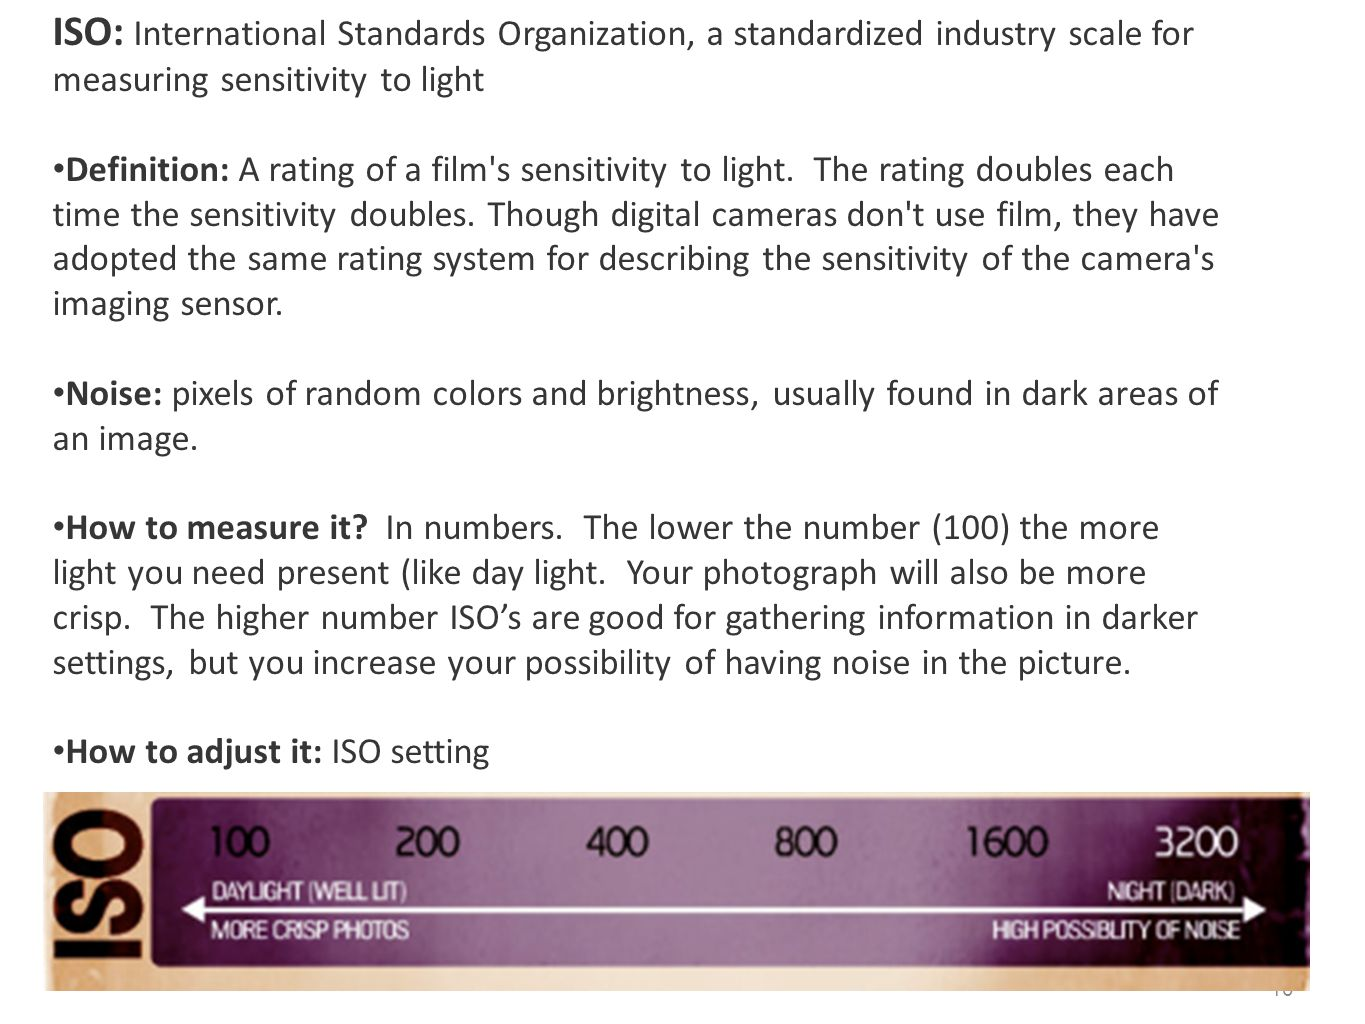 ISO: International Standards Organization, a standardized industry scale for measuring sensitivity to light